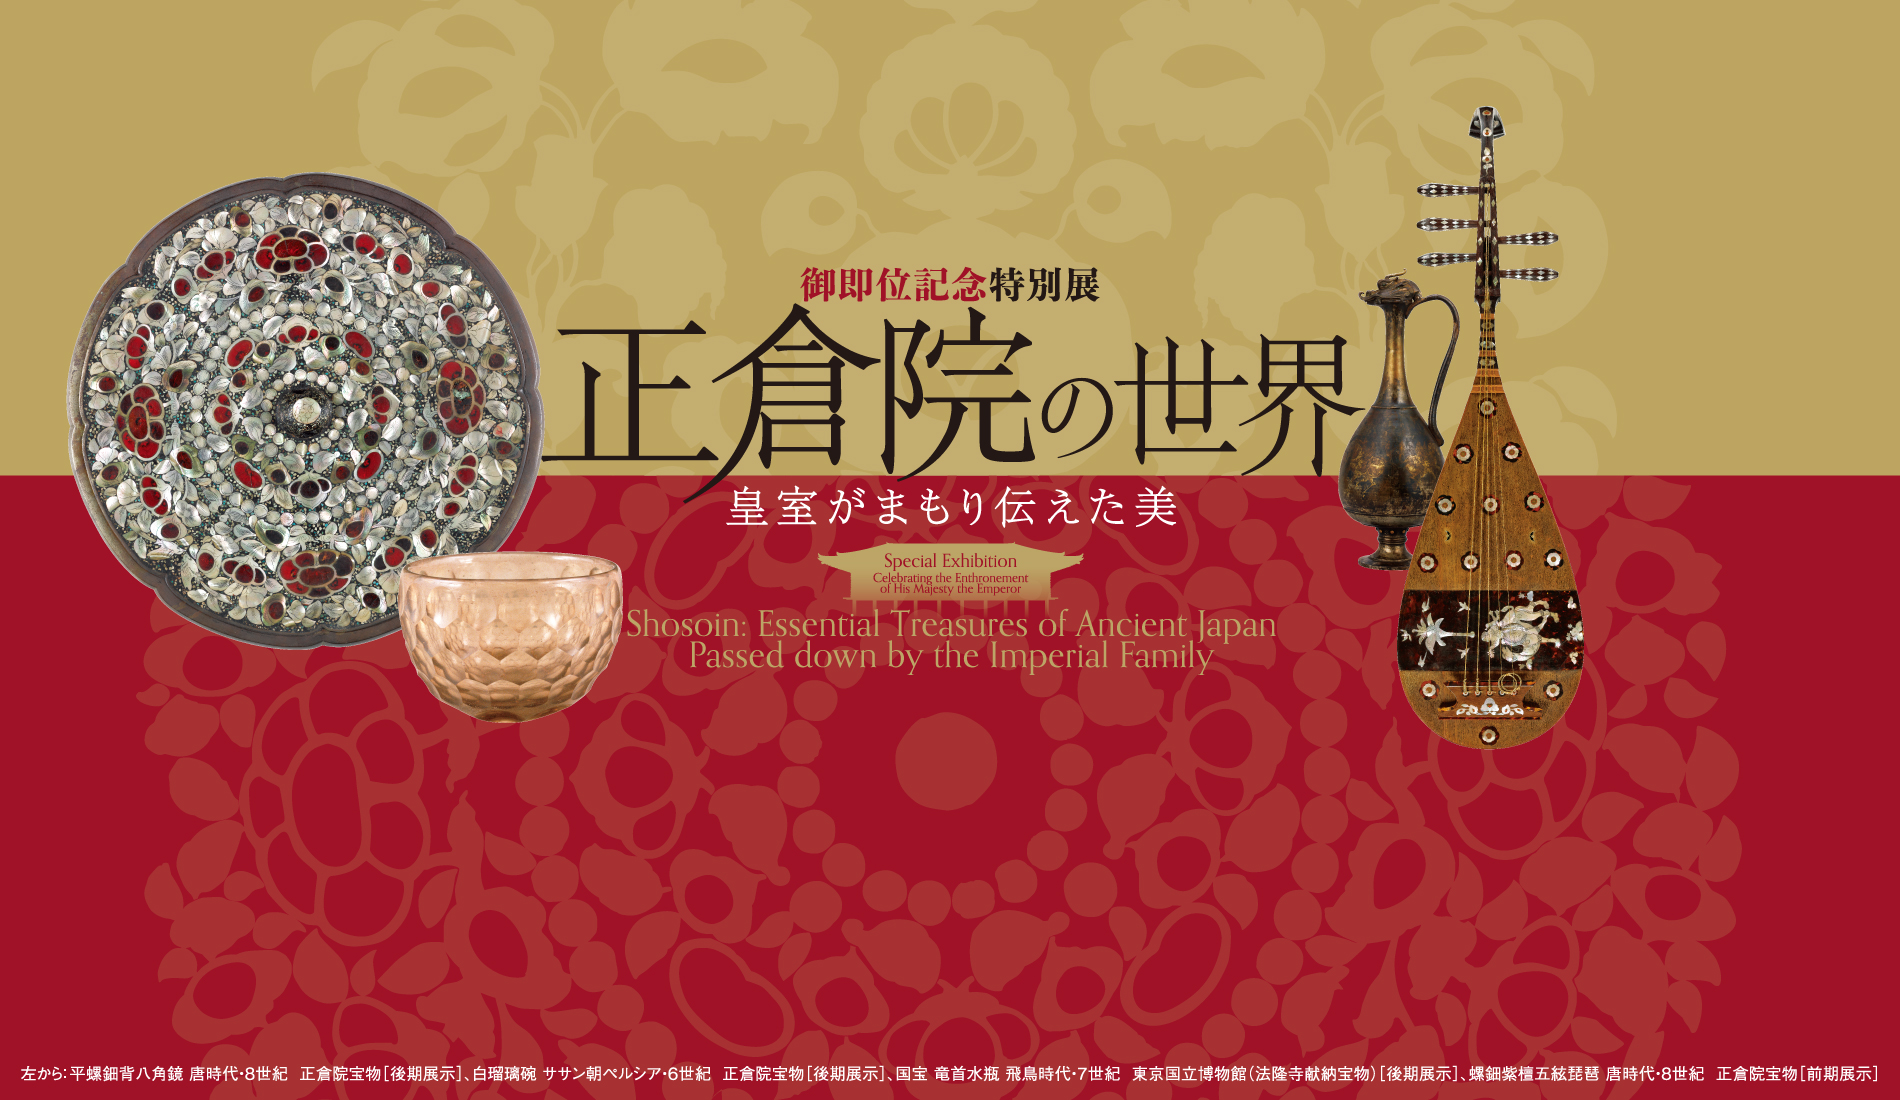 Shosoin: Essential Treasures of Ancient Japan Passed Down by the Imperial Family